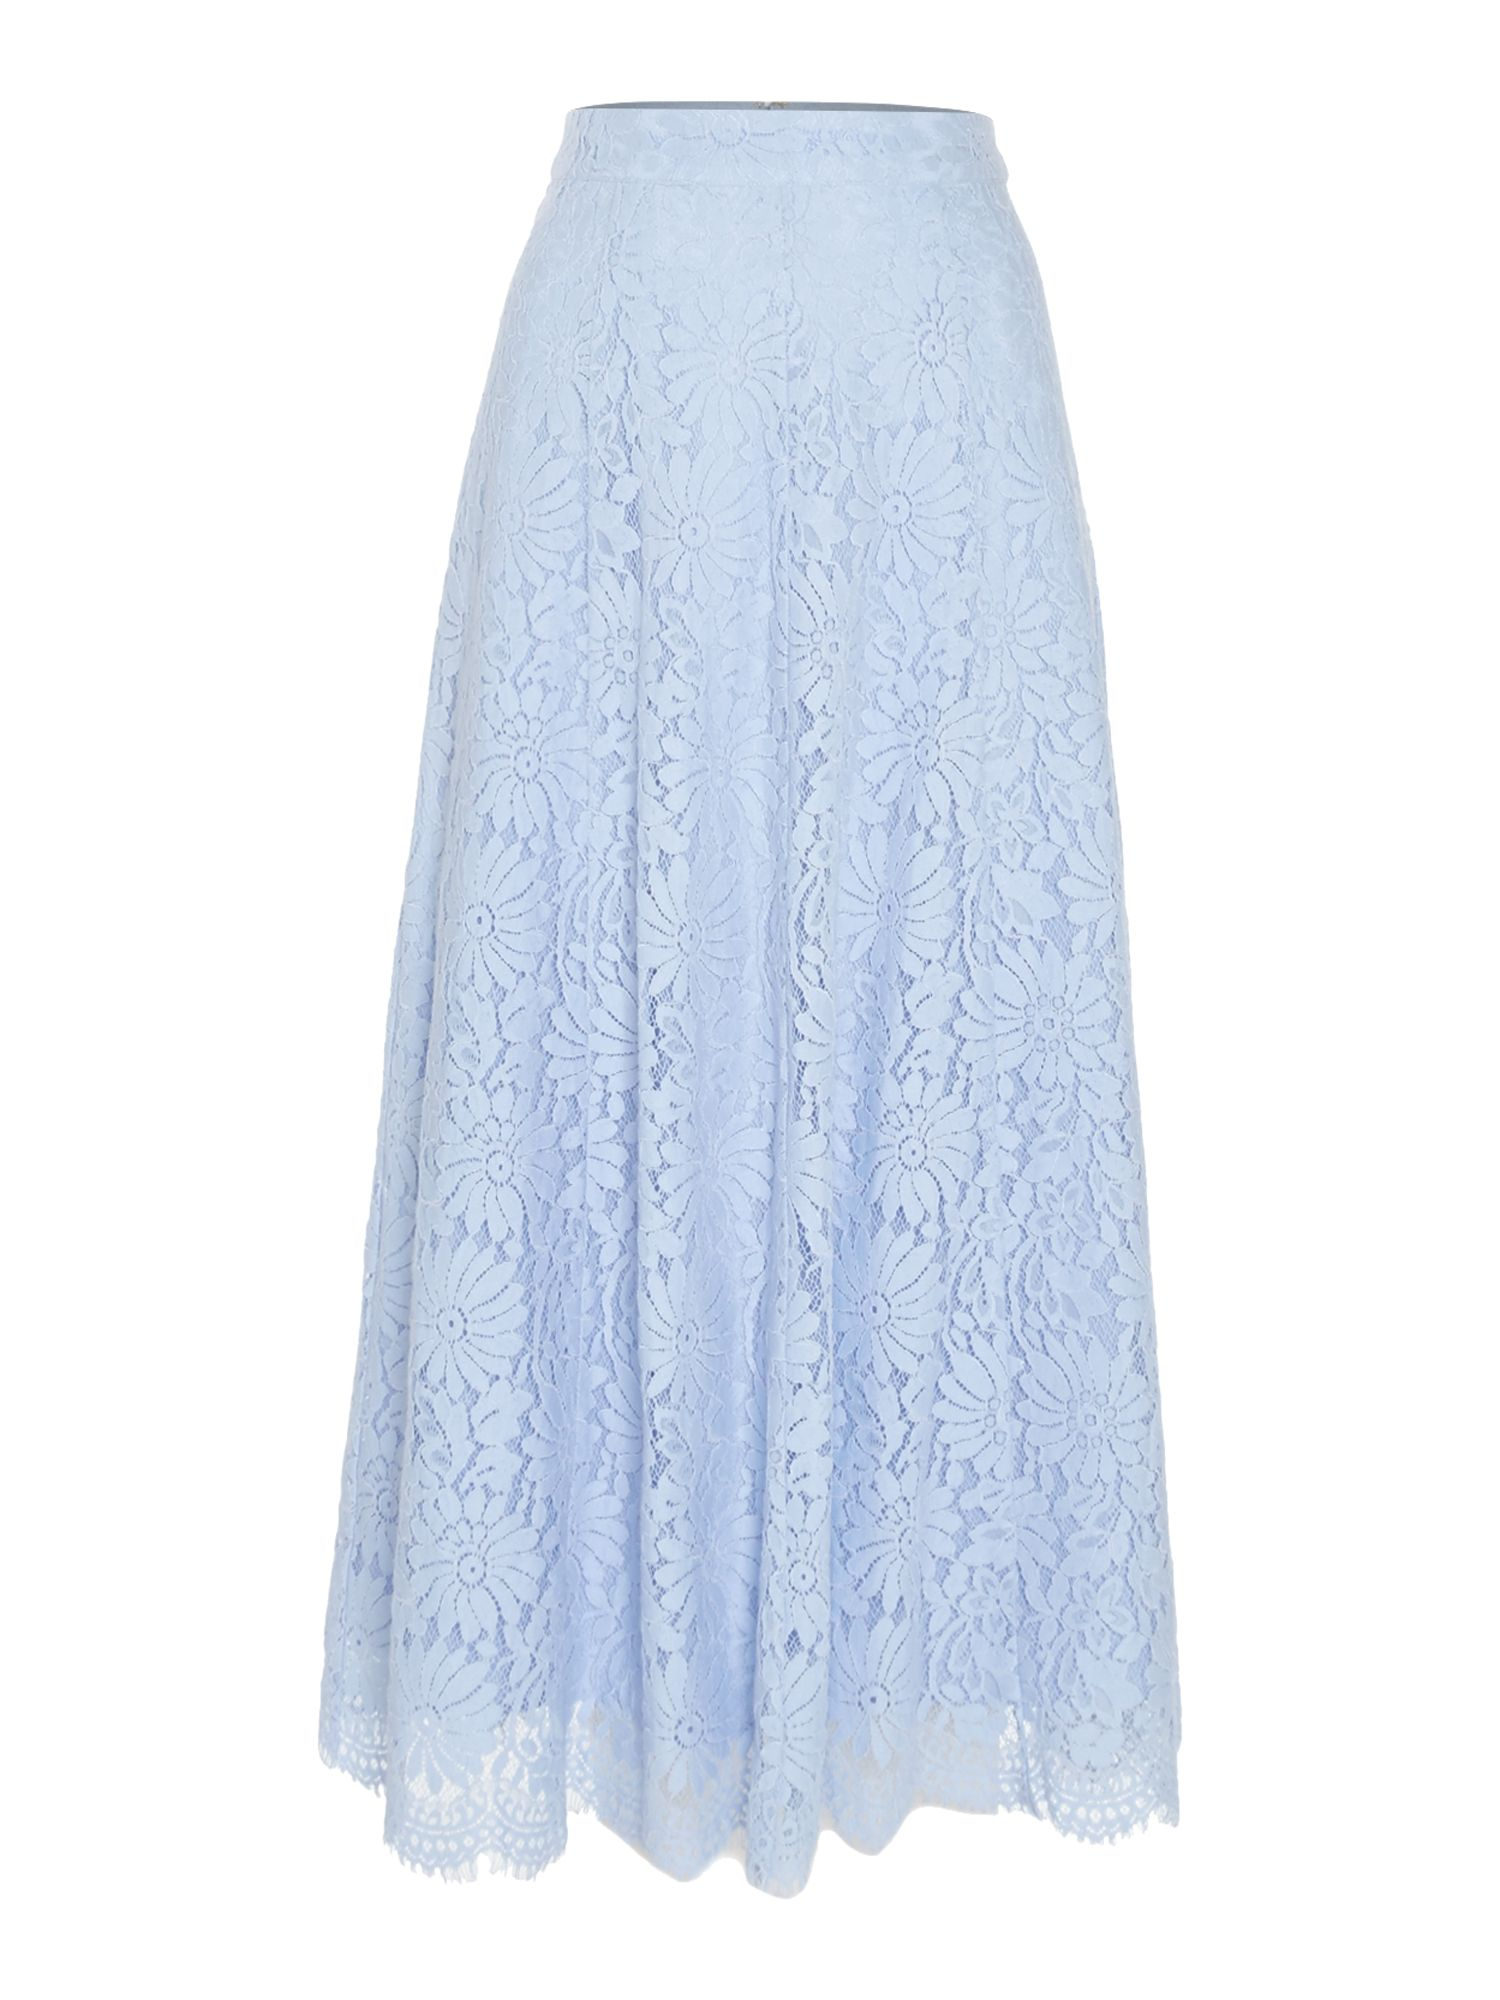 Ivy & Oak Lace a-line midi skirt, Blue